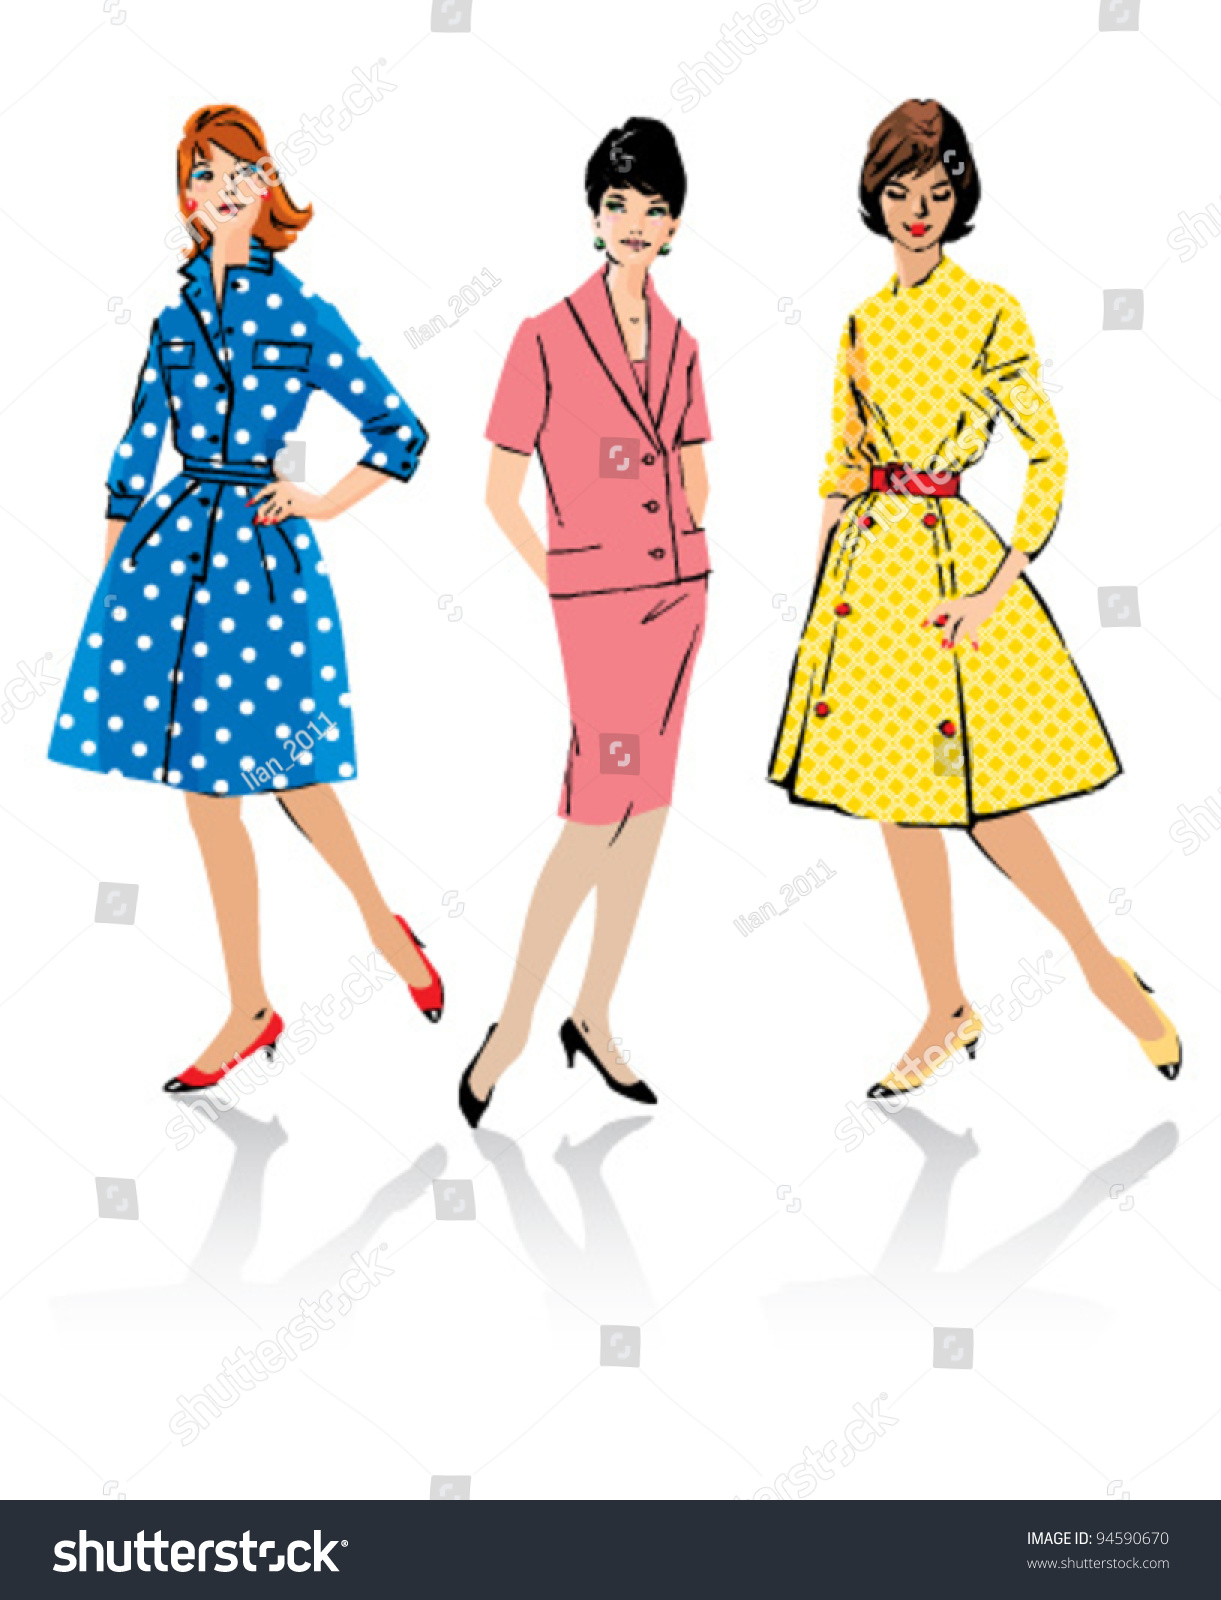 Set Of Elegant Women Retro Style Fashion Models Spring Season Stock Vector Illustration